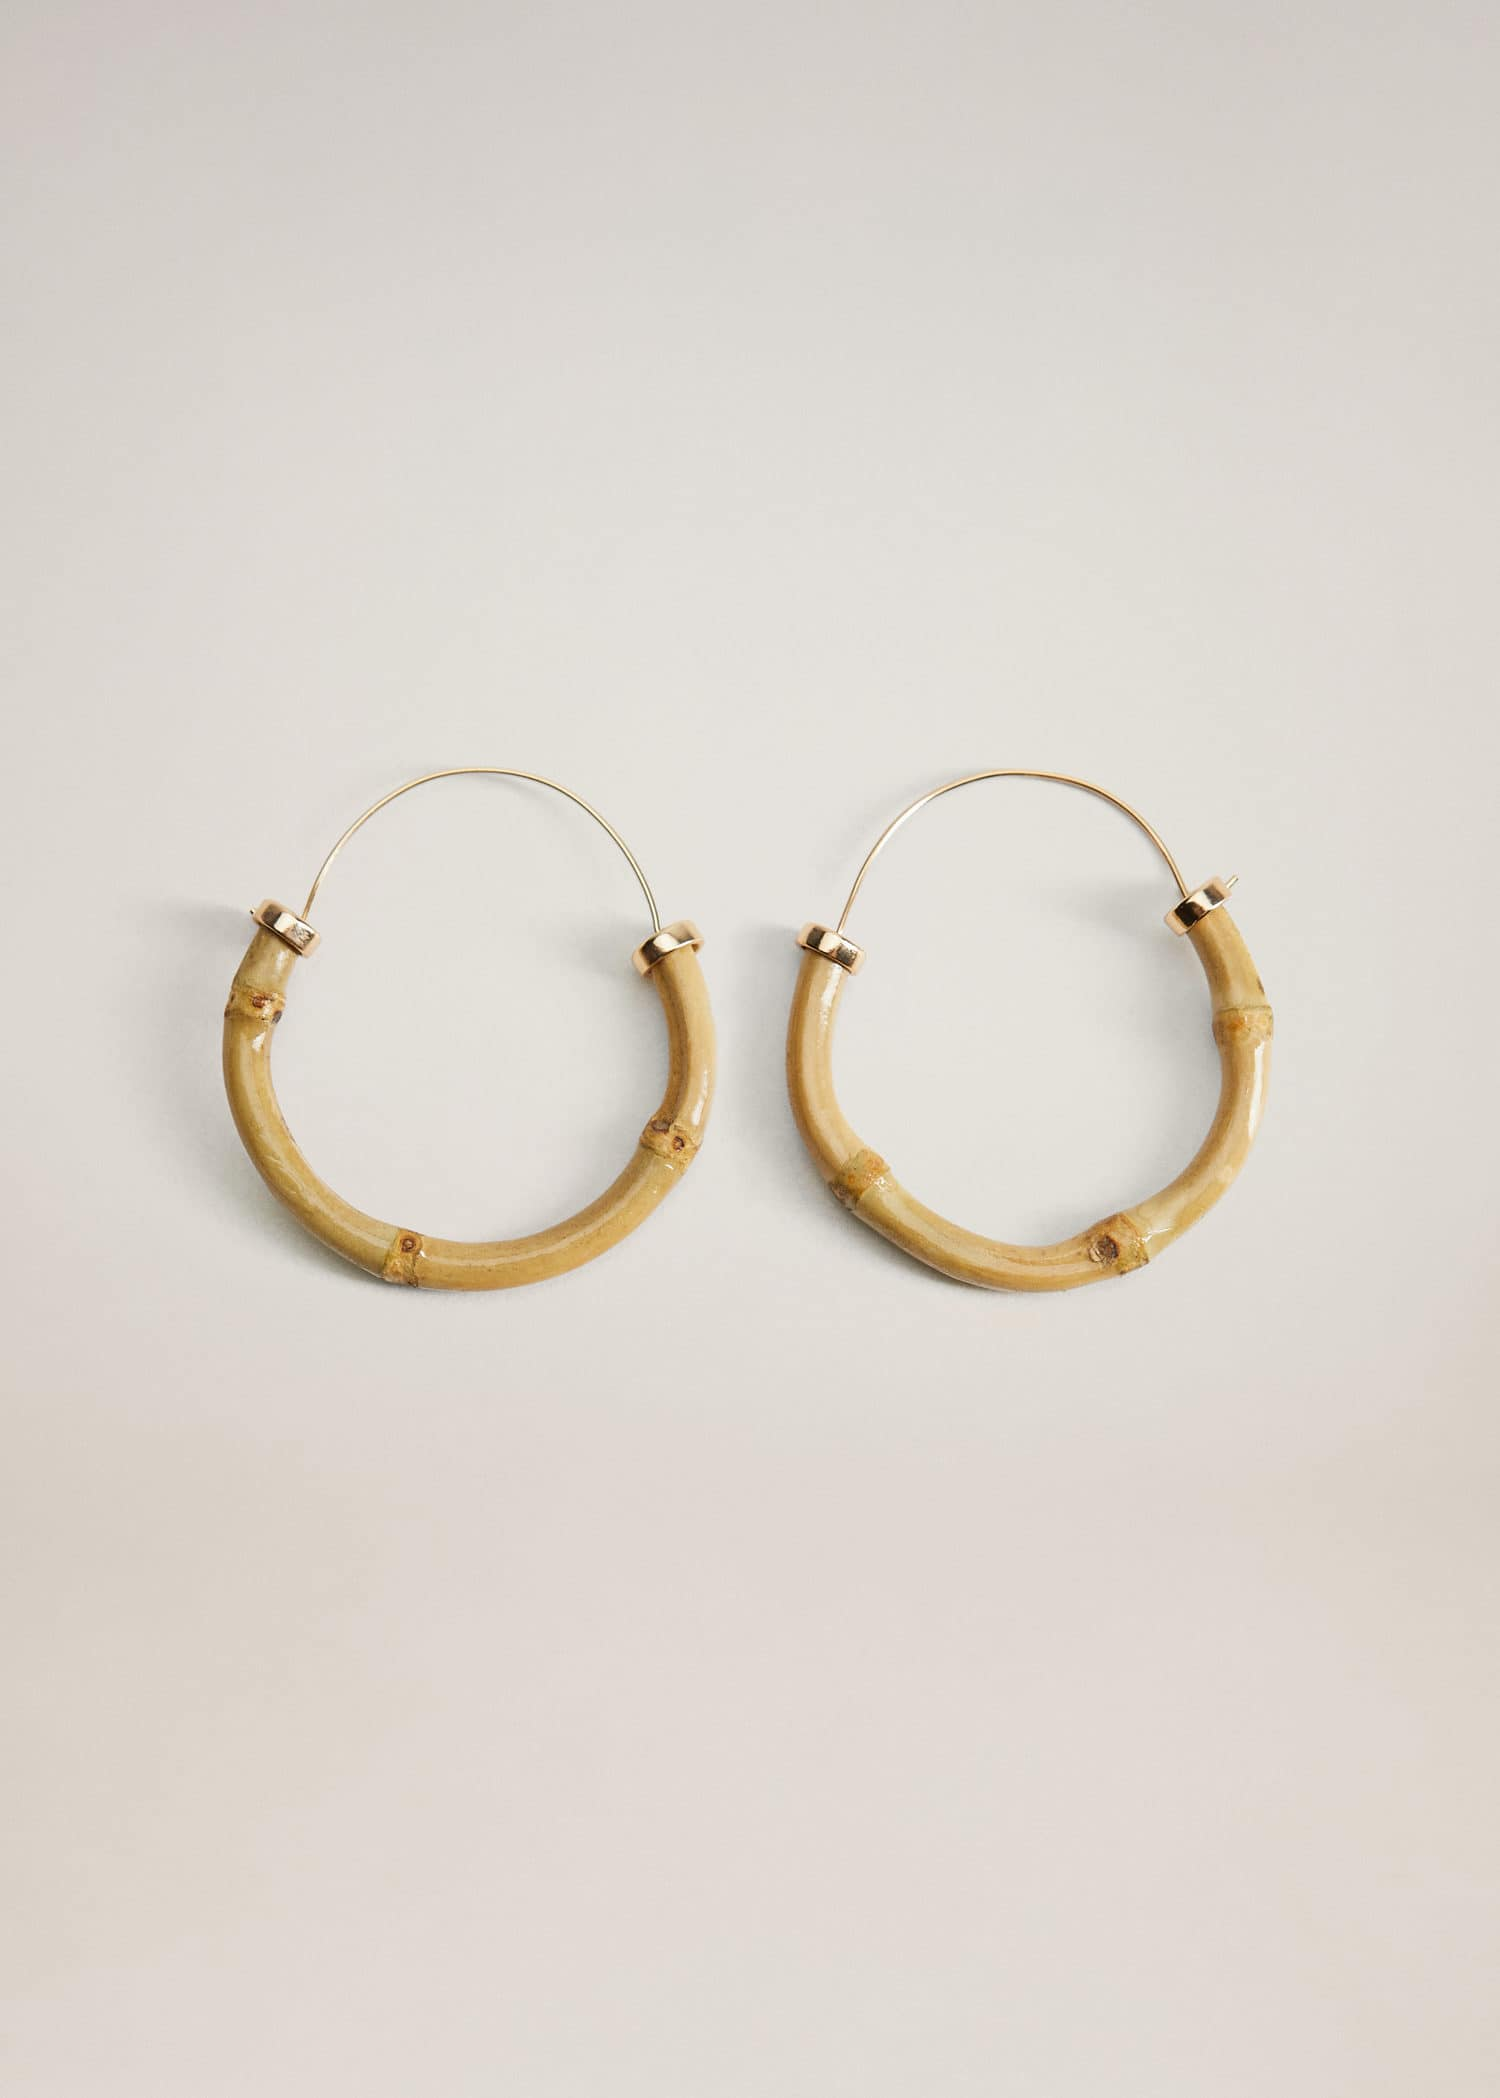 Bamboo hoop earrings - Article without model